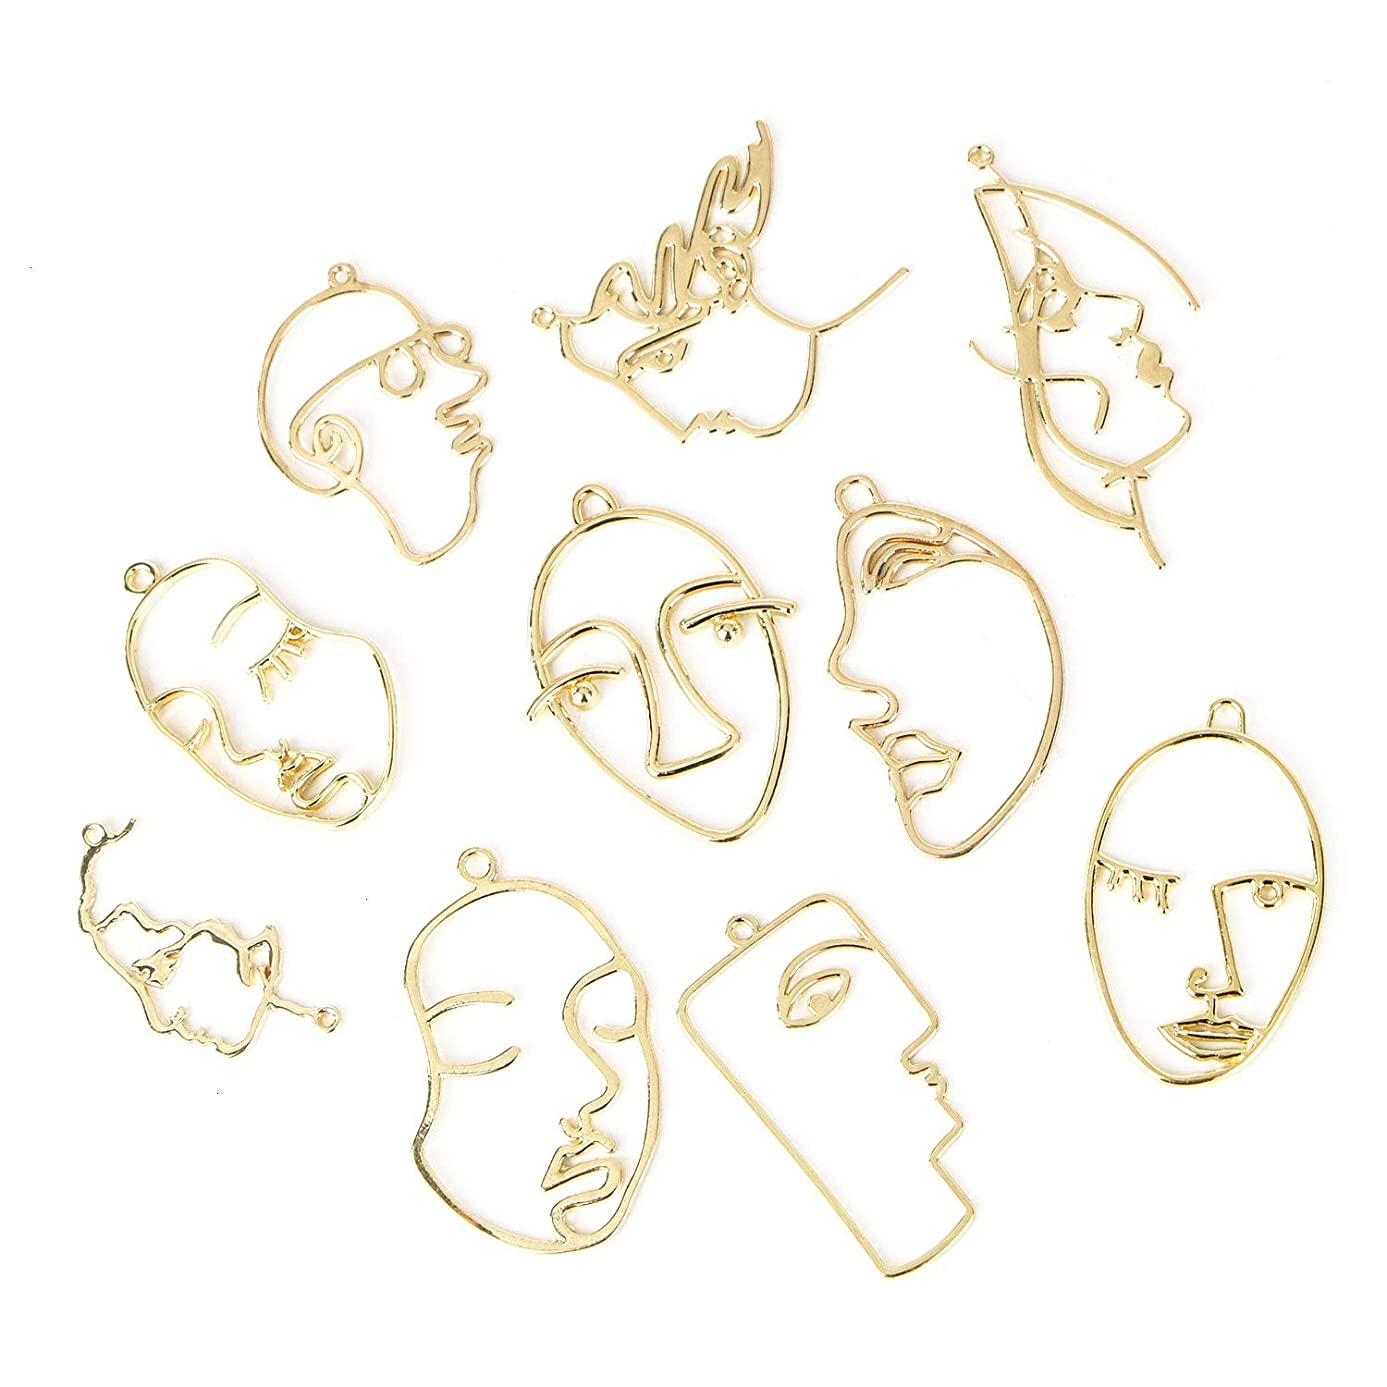 Monrocco 10Pcs Gold Plated Face Shape Pendant Charm for DIY Chain Necklace Earrings